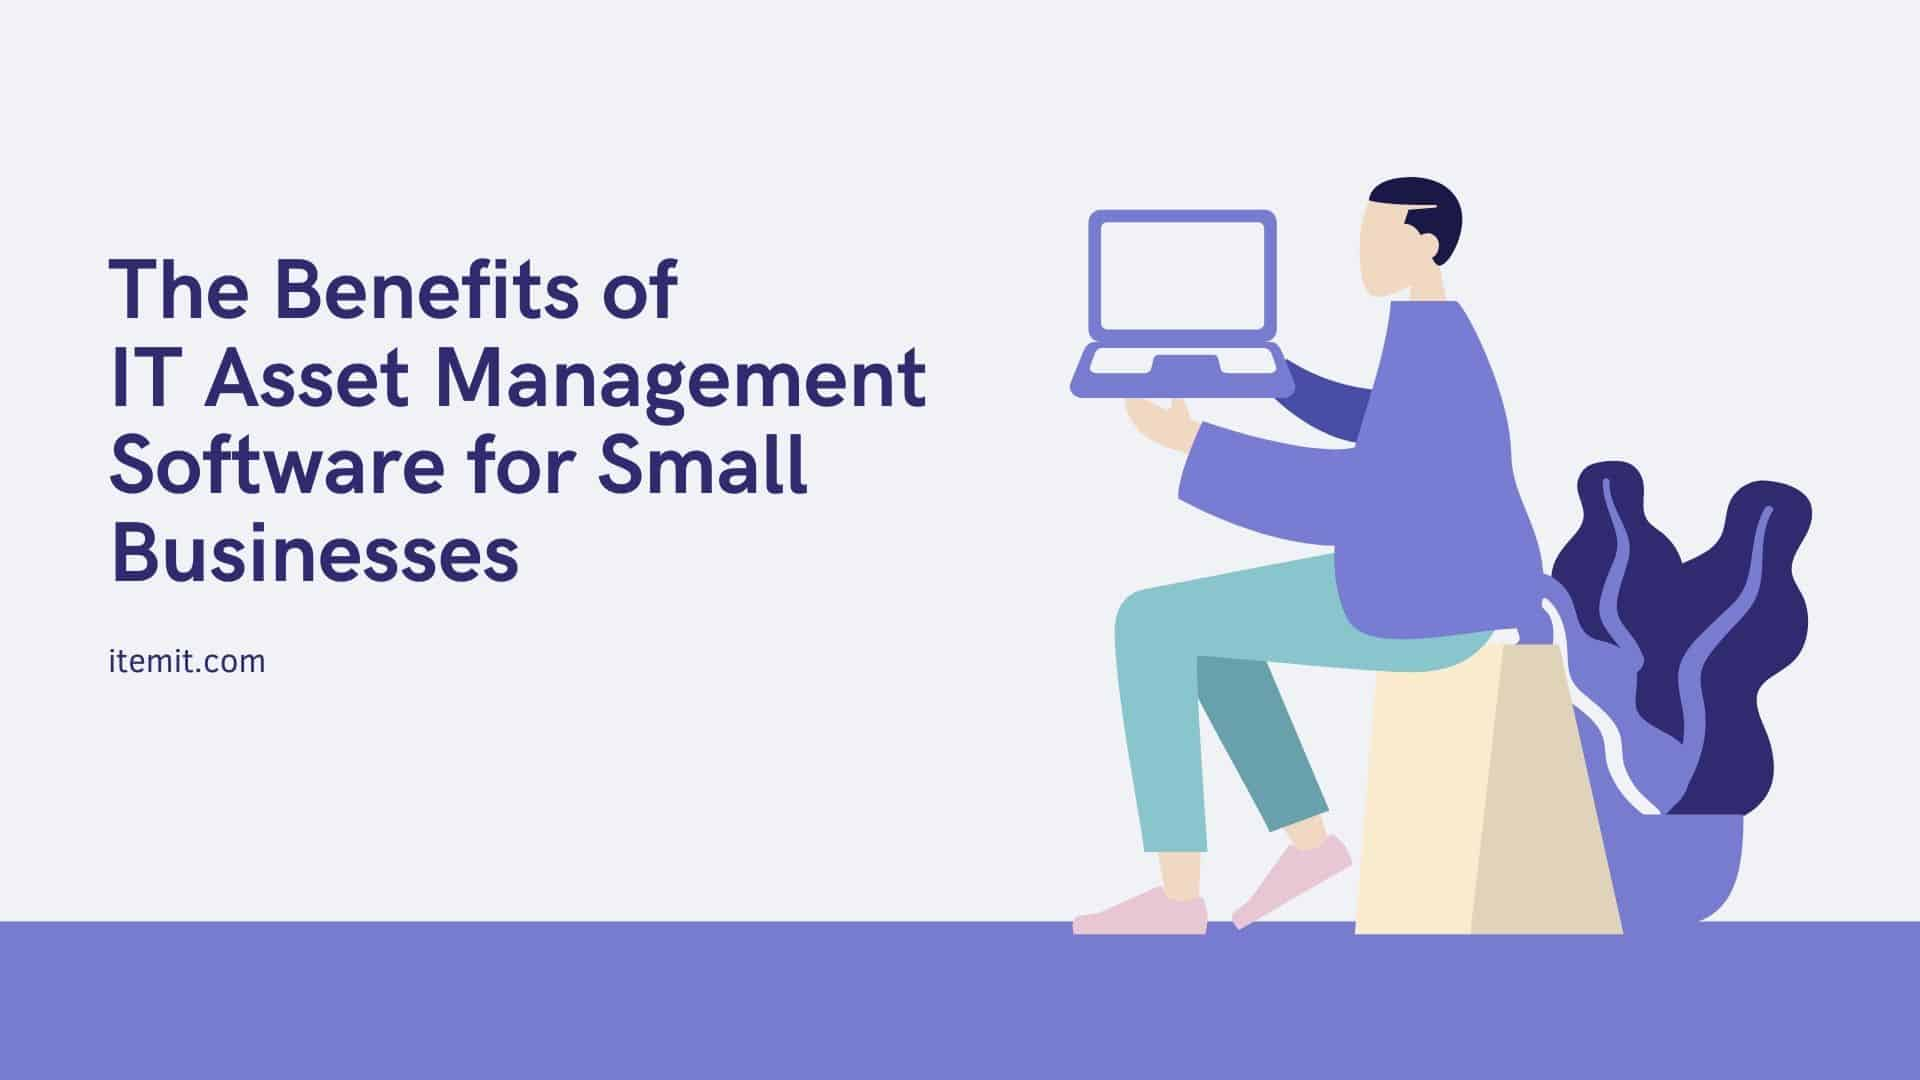 benefits of IT asset management software for small businesses